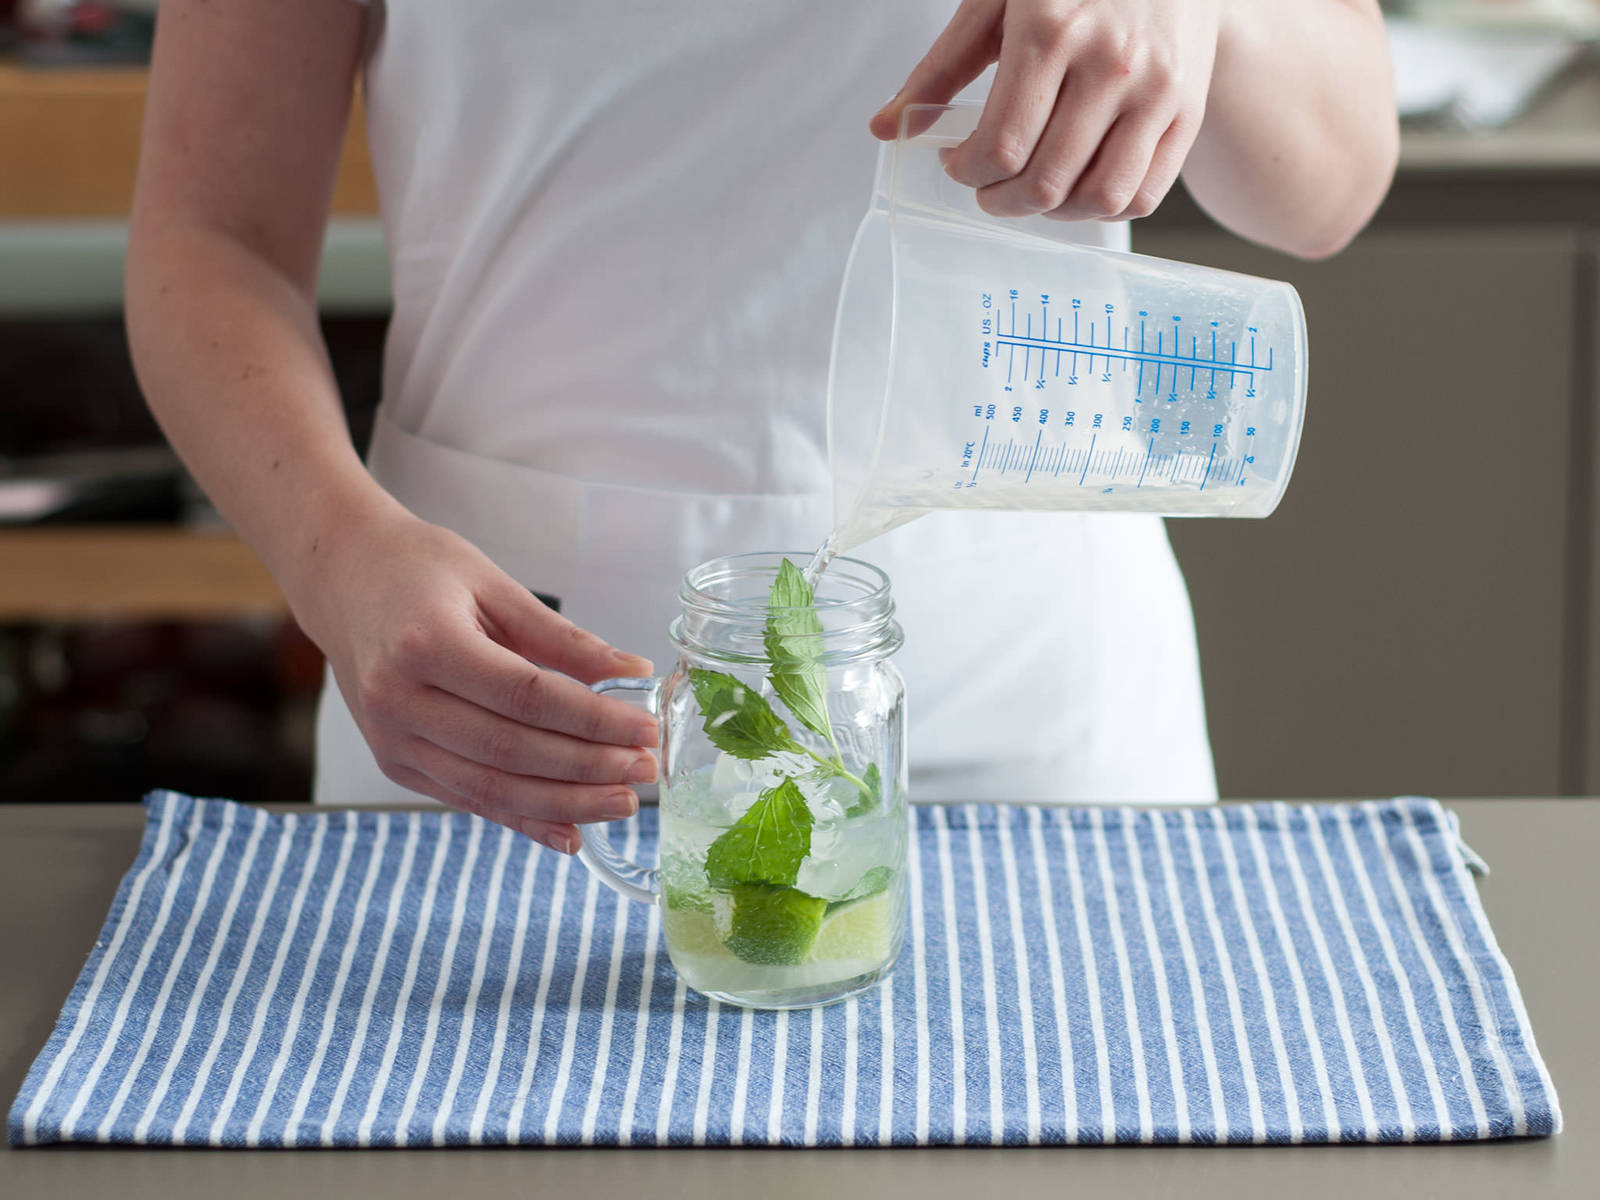 Add ice cubes to glass. Pour in rum and lightly stir. Top up with soda water. Garnish with mint and enjoy!